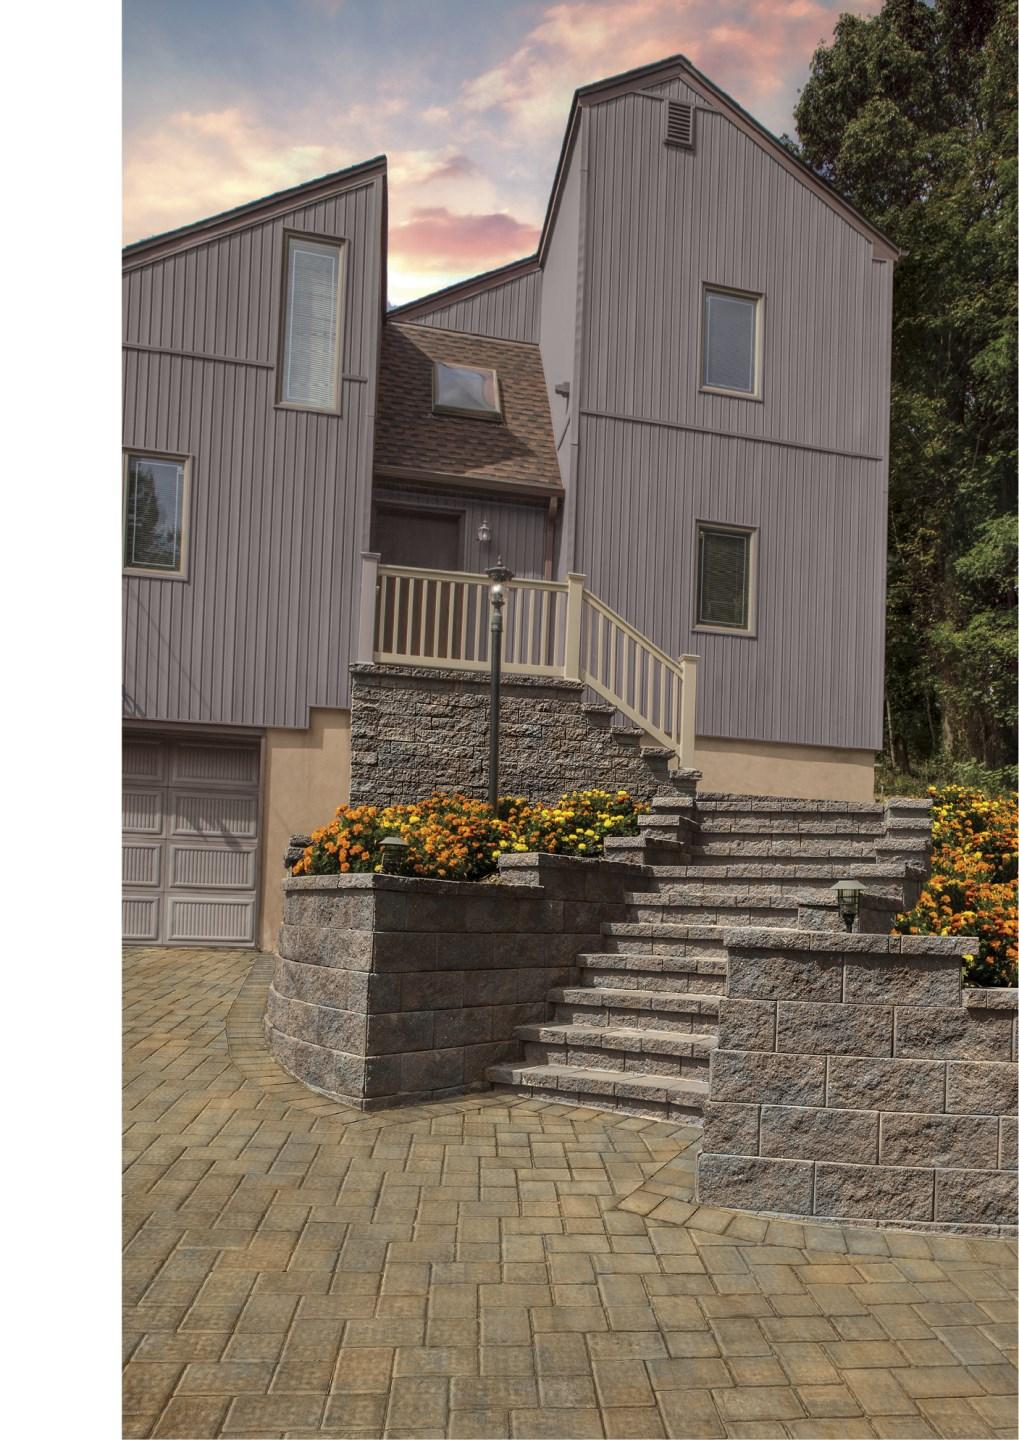 Mortarless Segmental Retaining Walls installed in North America surpass every country world-wide.